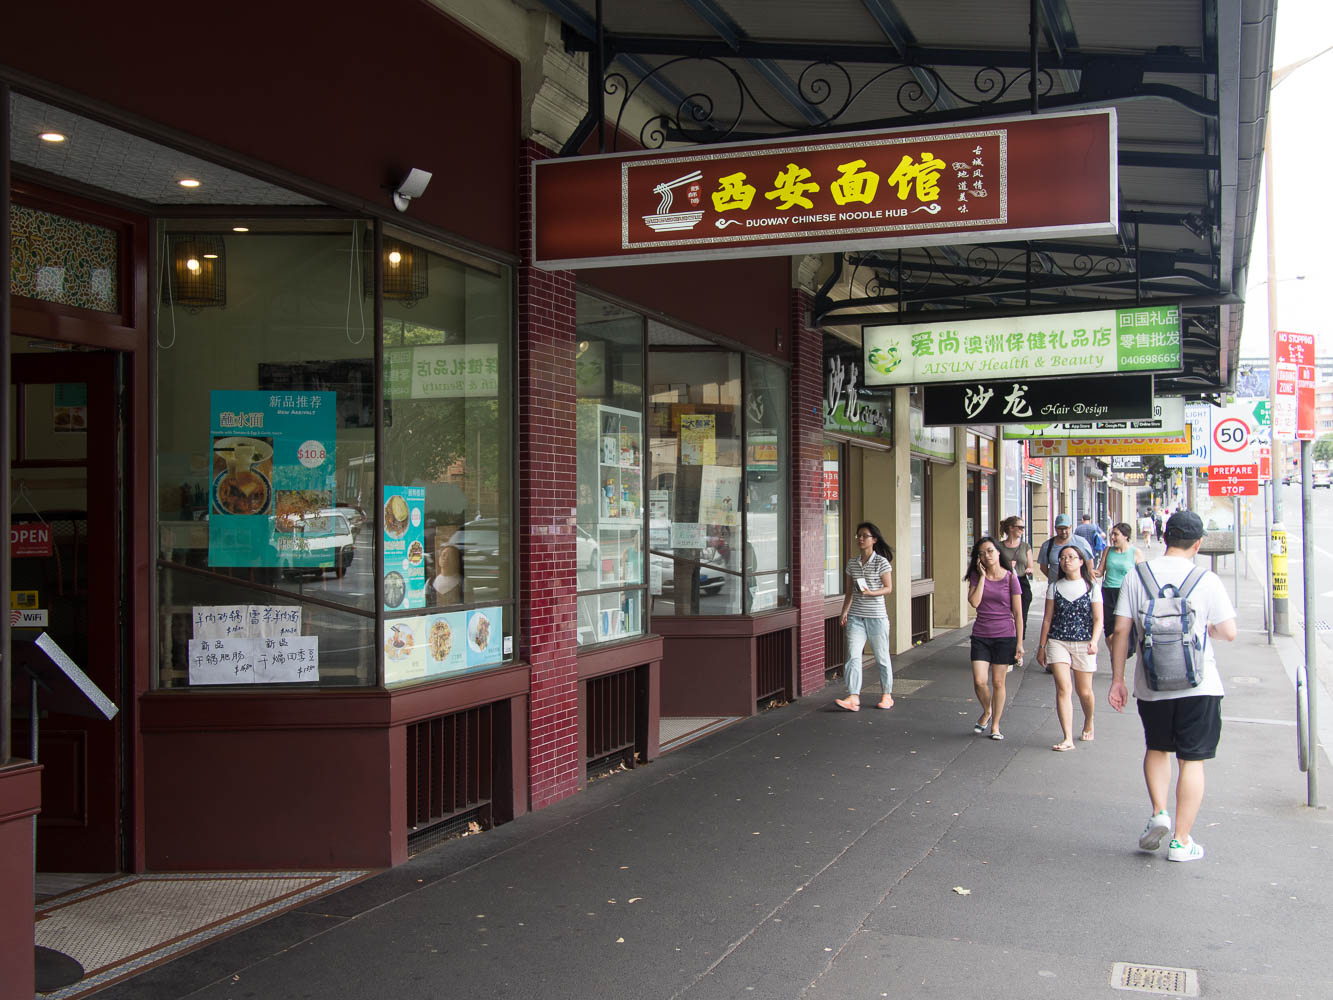 Chinese Noodle Restaurant Ultimo